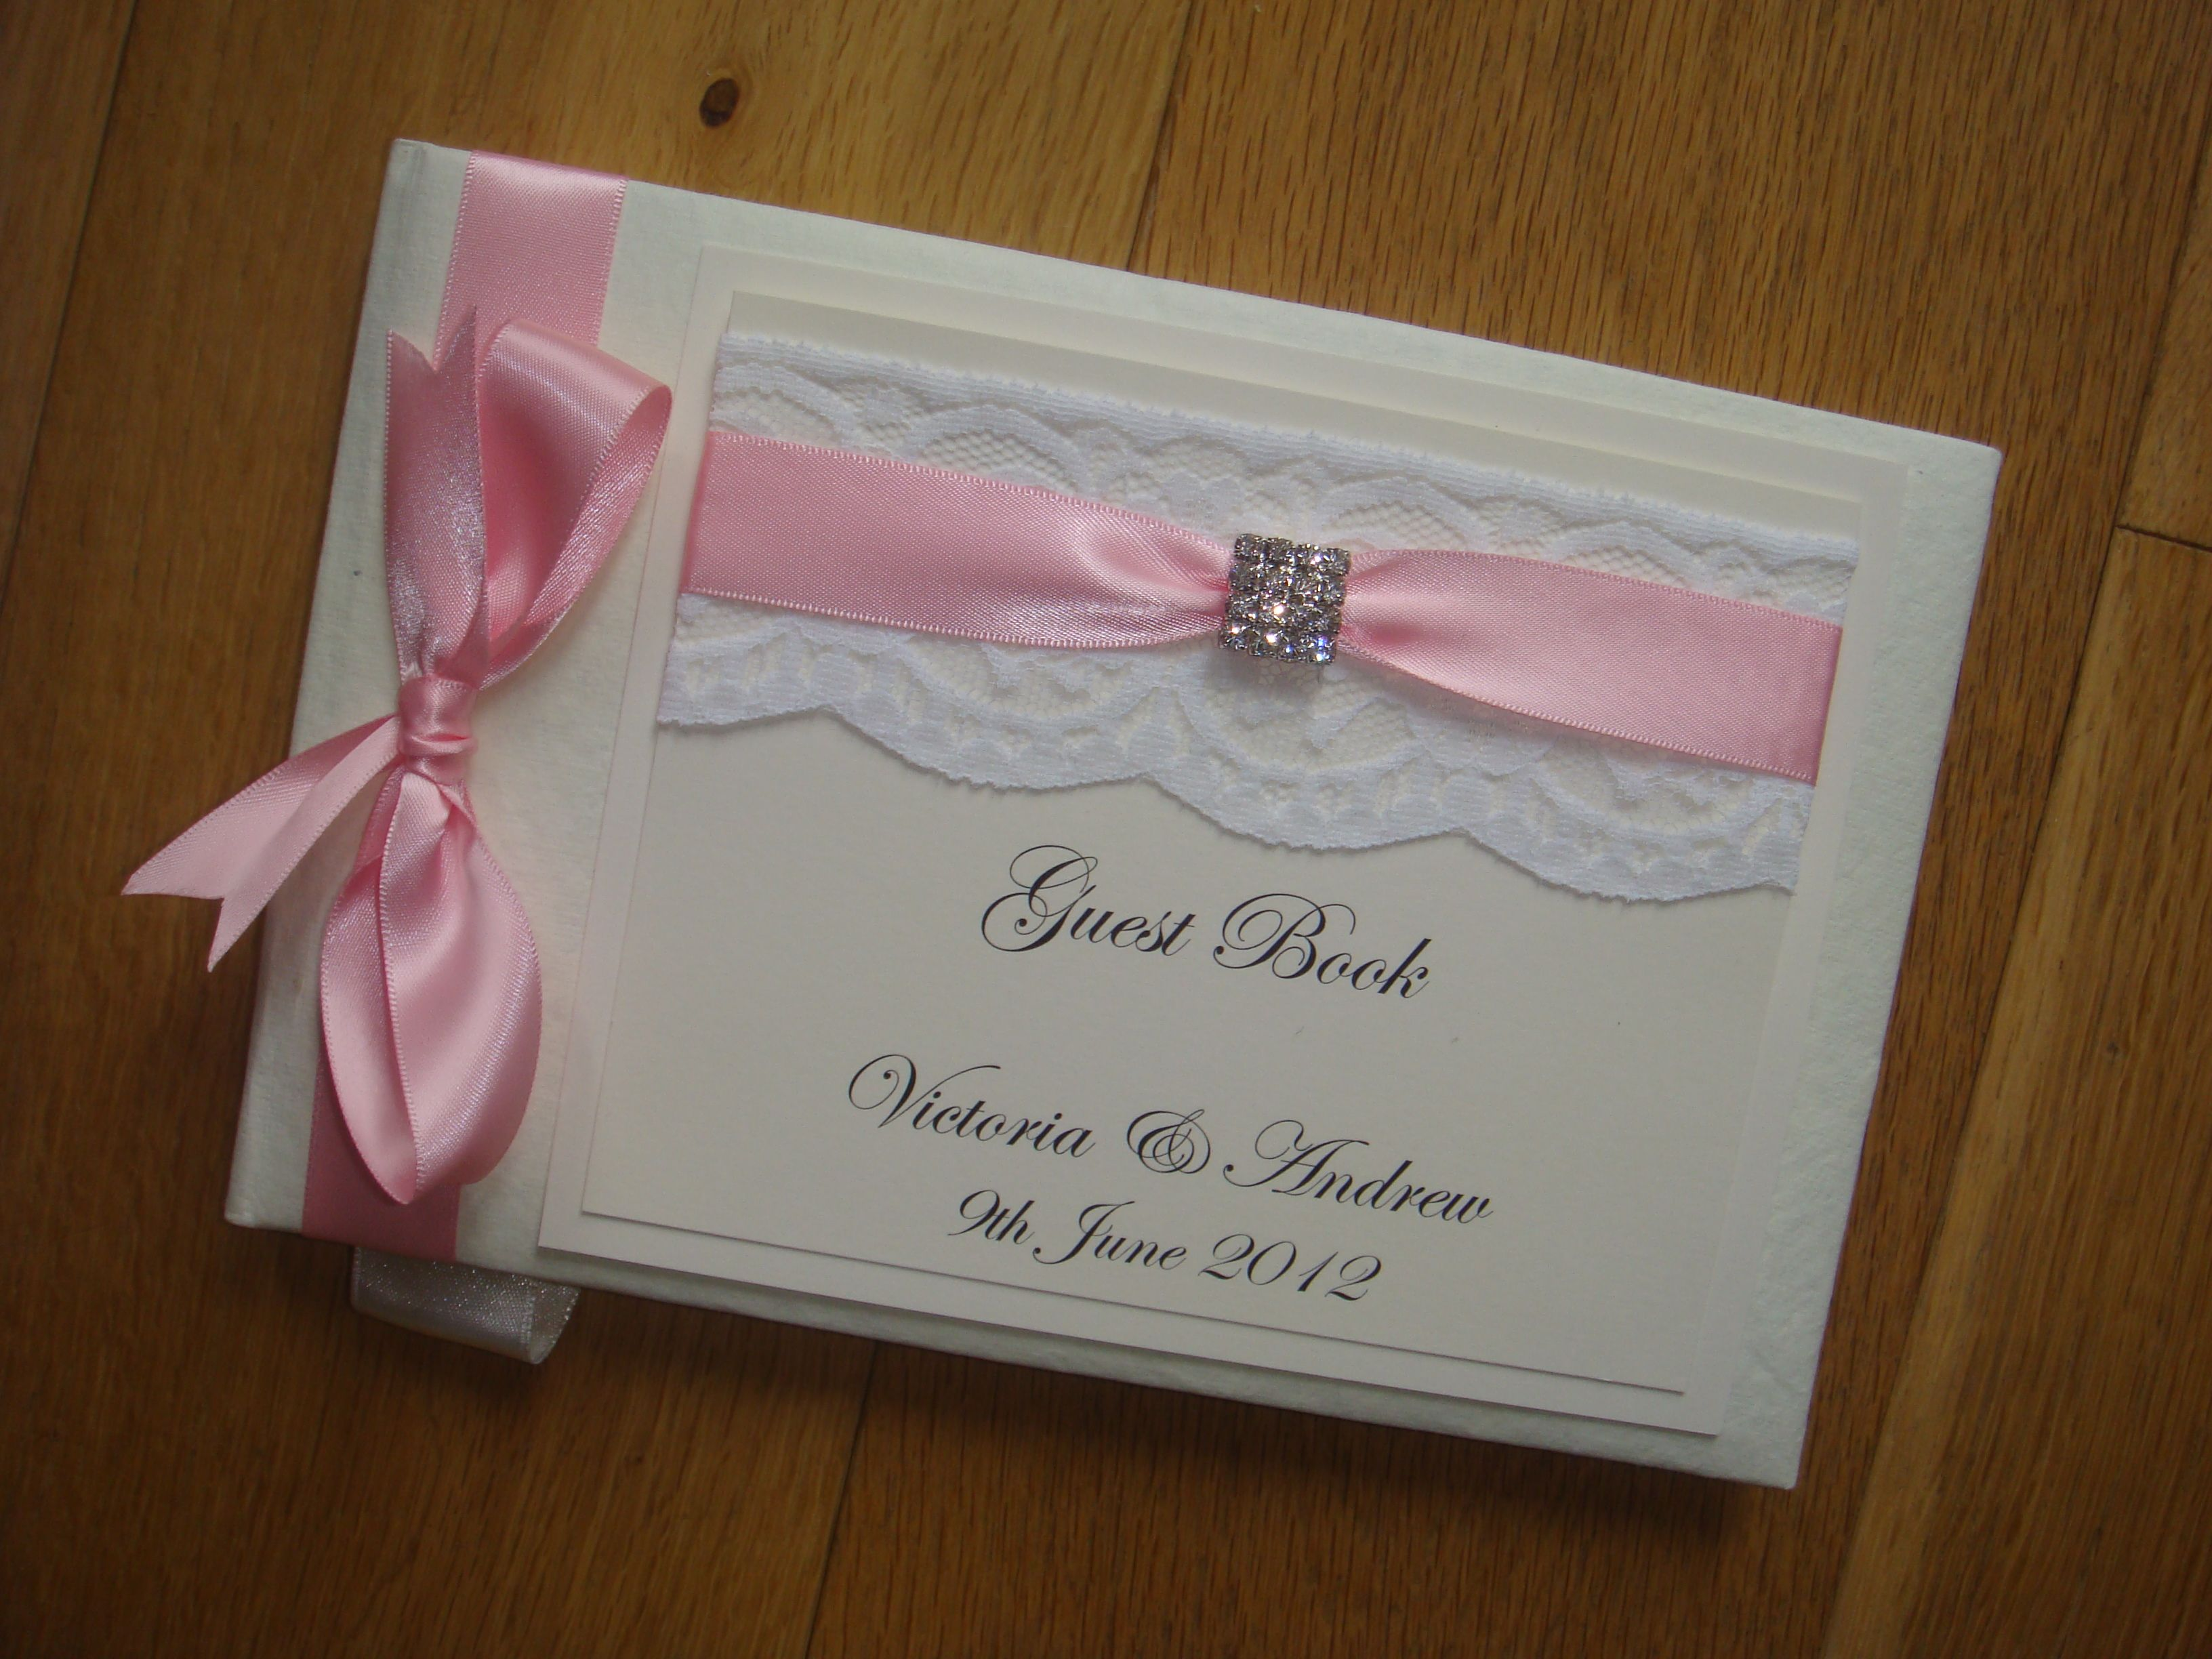 Wedding Guest Book With A Diamante Crystal Embellishment In Pink